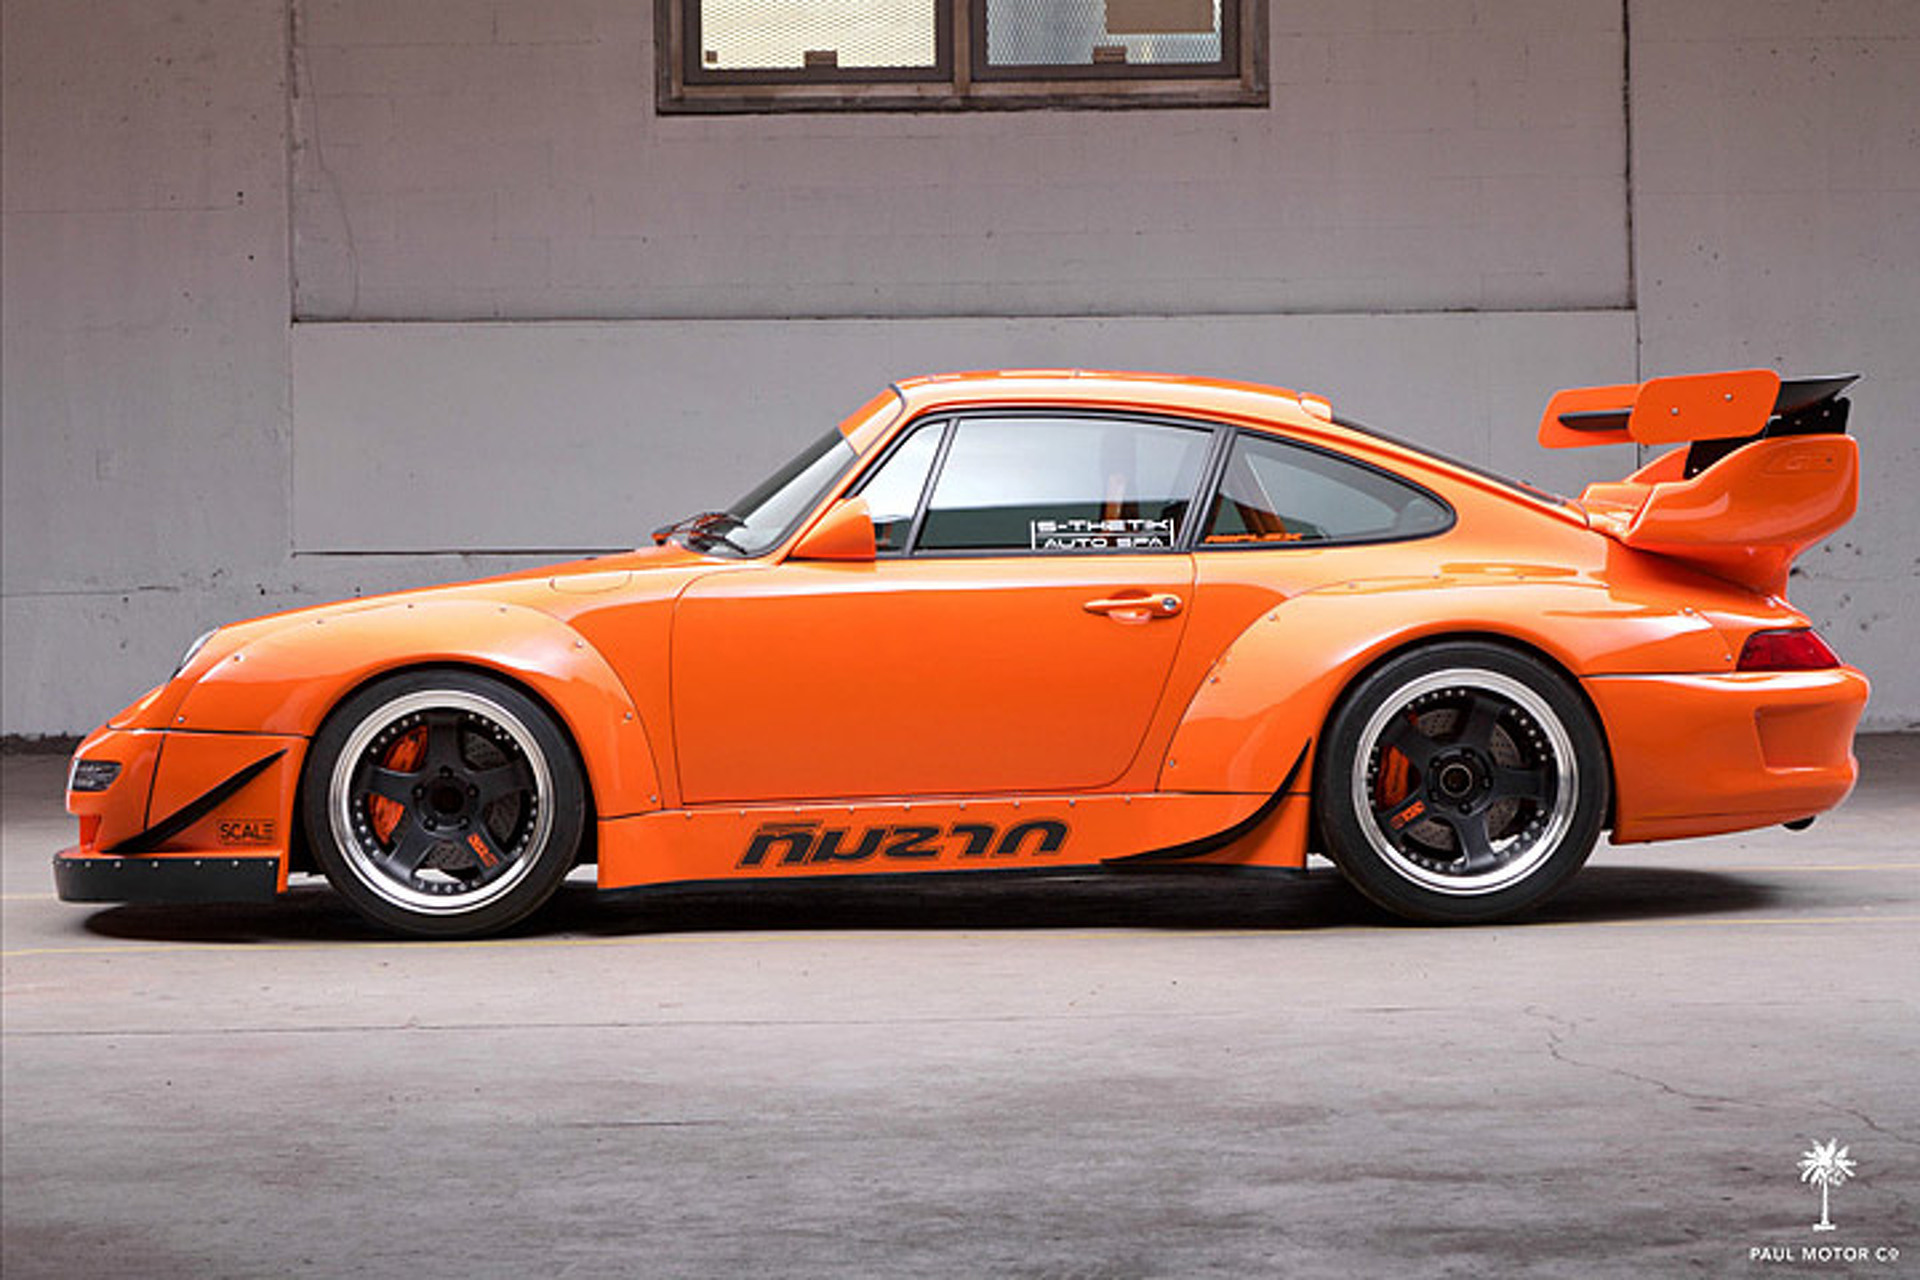 Porsche 911 Not Scary Enough? This One Has a Corvette V8